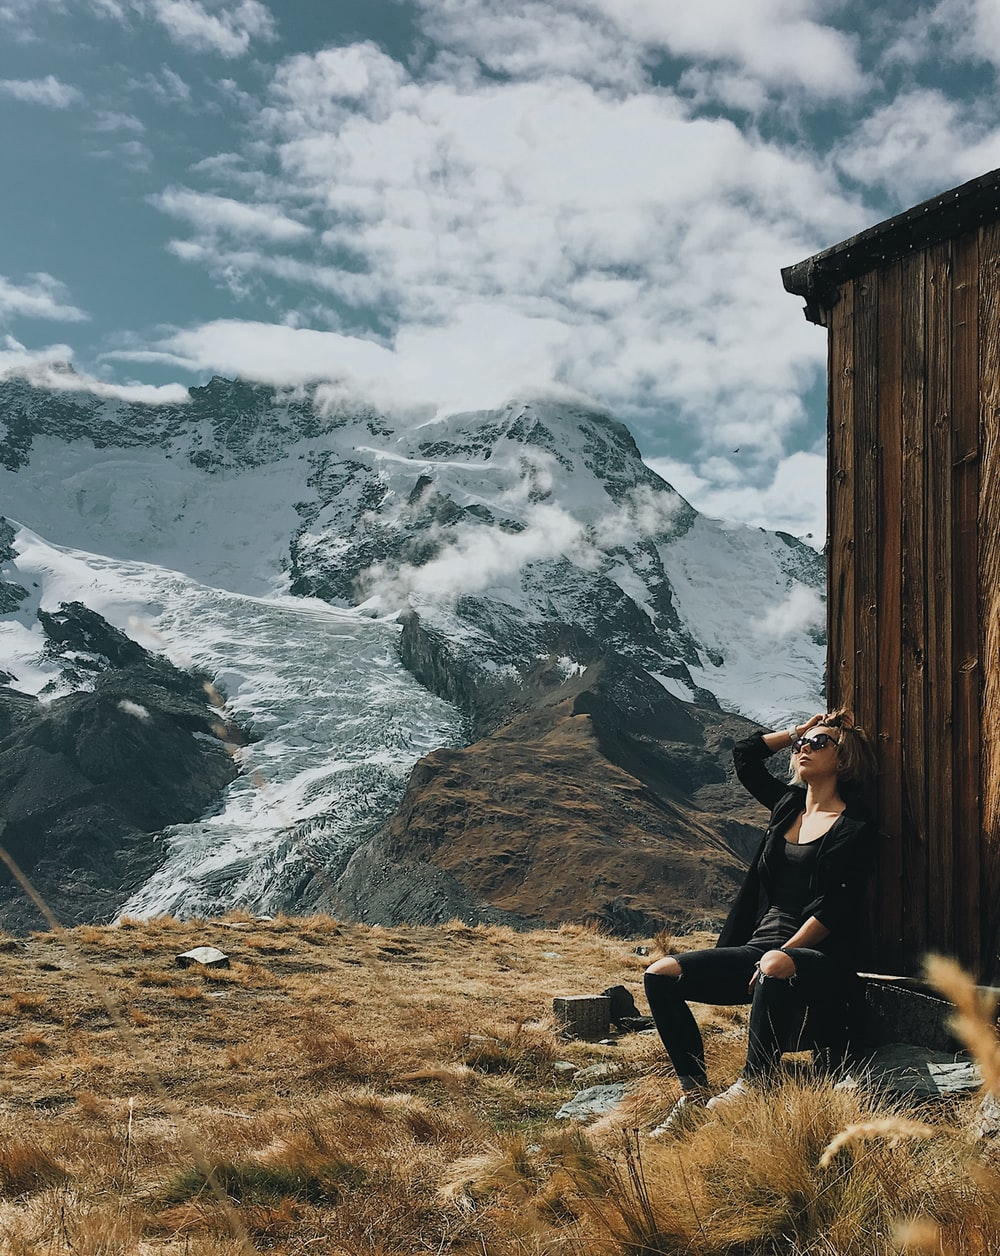 woman wearing black shirt sitting on rock with view of snow capped mountain